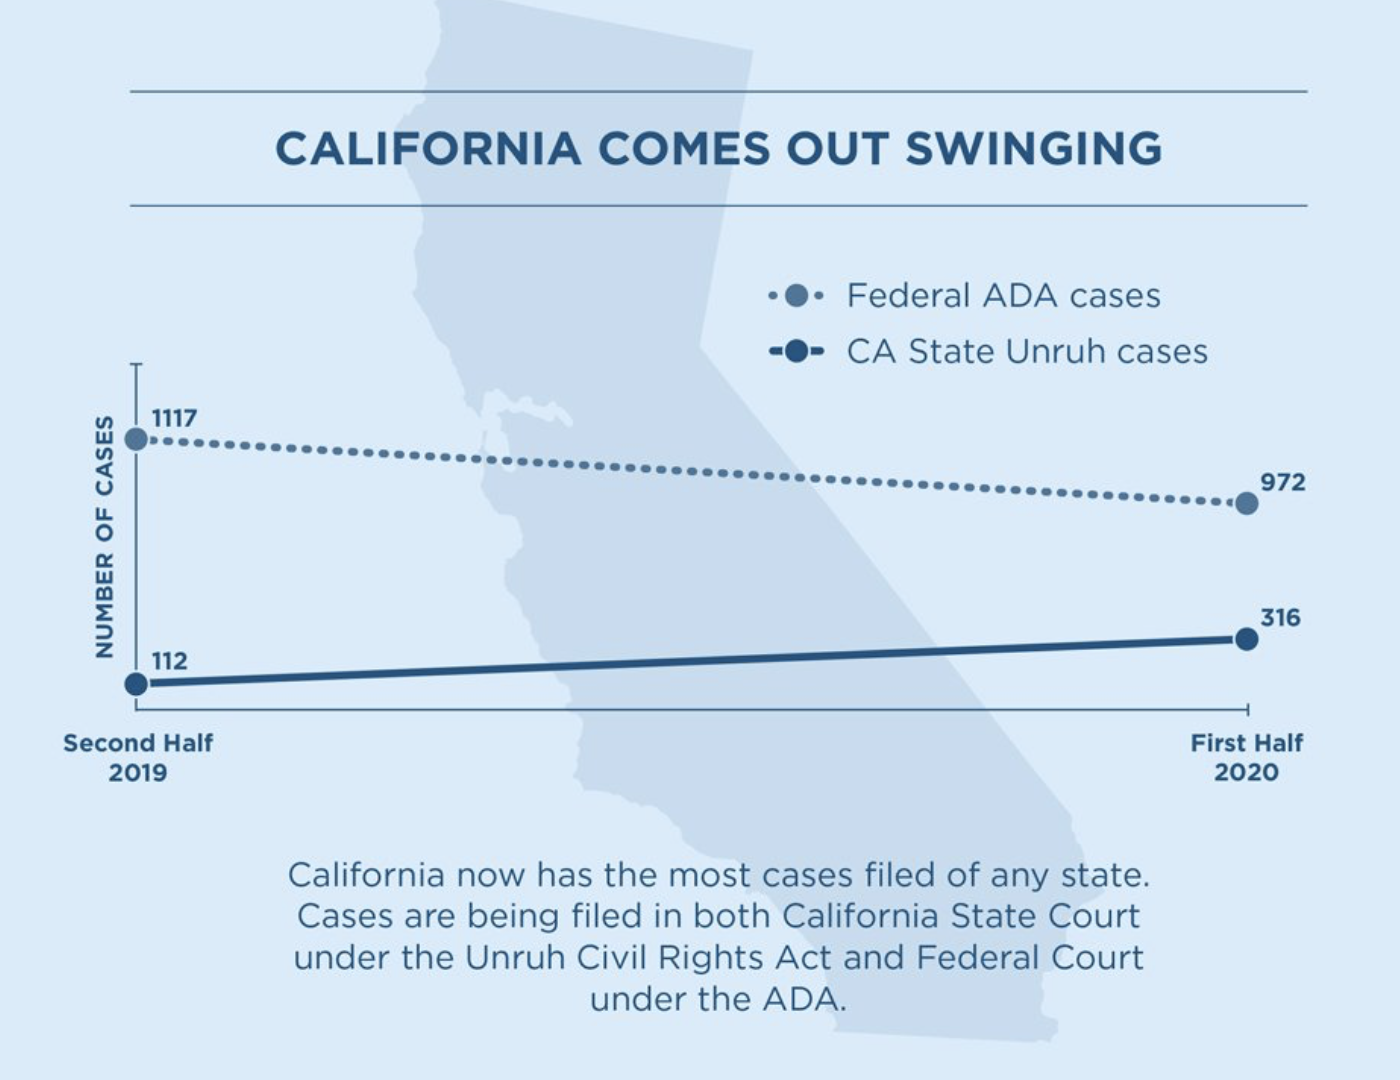 Graph compares the number of lawsuits filed in state court versus the number of lawsuits filed in federal court from the second half of 2019 to the first half of 2020. California Unruh cases filed in state court are depicted with a straight line that starts at the data point of 112 and ends at 316 with no points between. Federal ADA cases are shown as a dotted line that start at the data point of 1117 in the second half of 2019 and end at 972 by the early half of 2020.  Text reads: California now has the most cases filed of any state. Cases are being filed in both California State Court under the Unruh Civil Rights Act and Federal Court under the ADA.